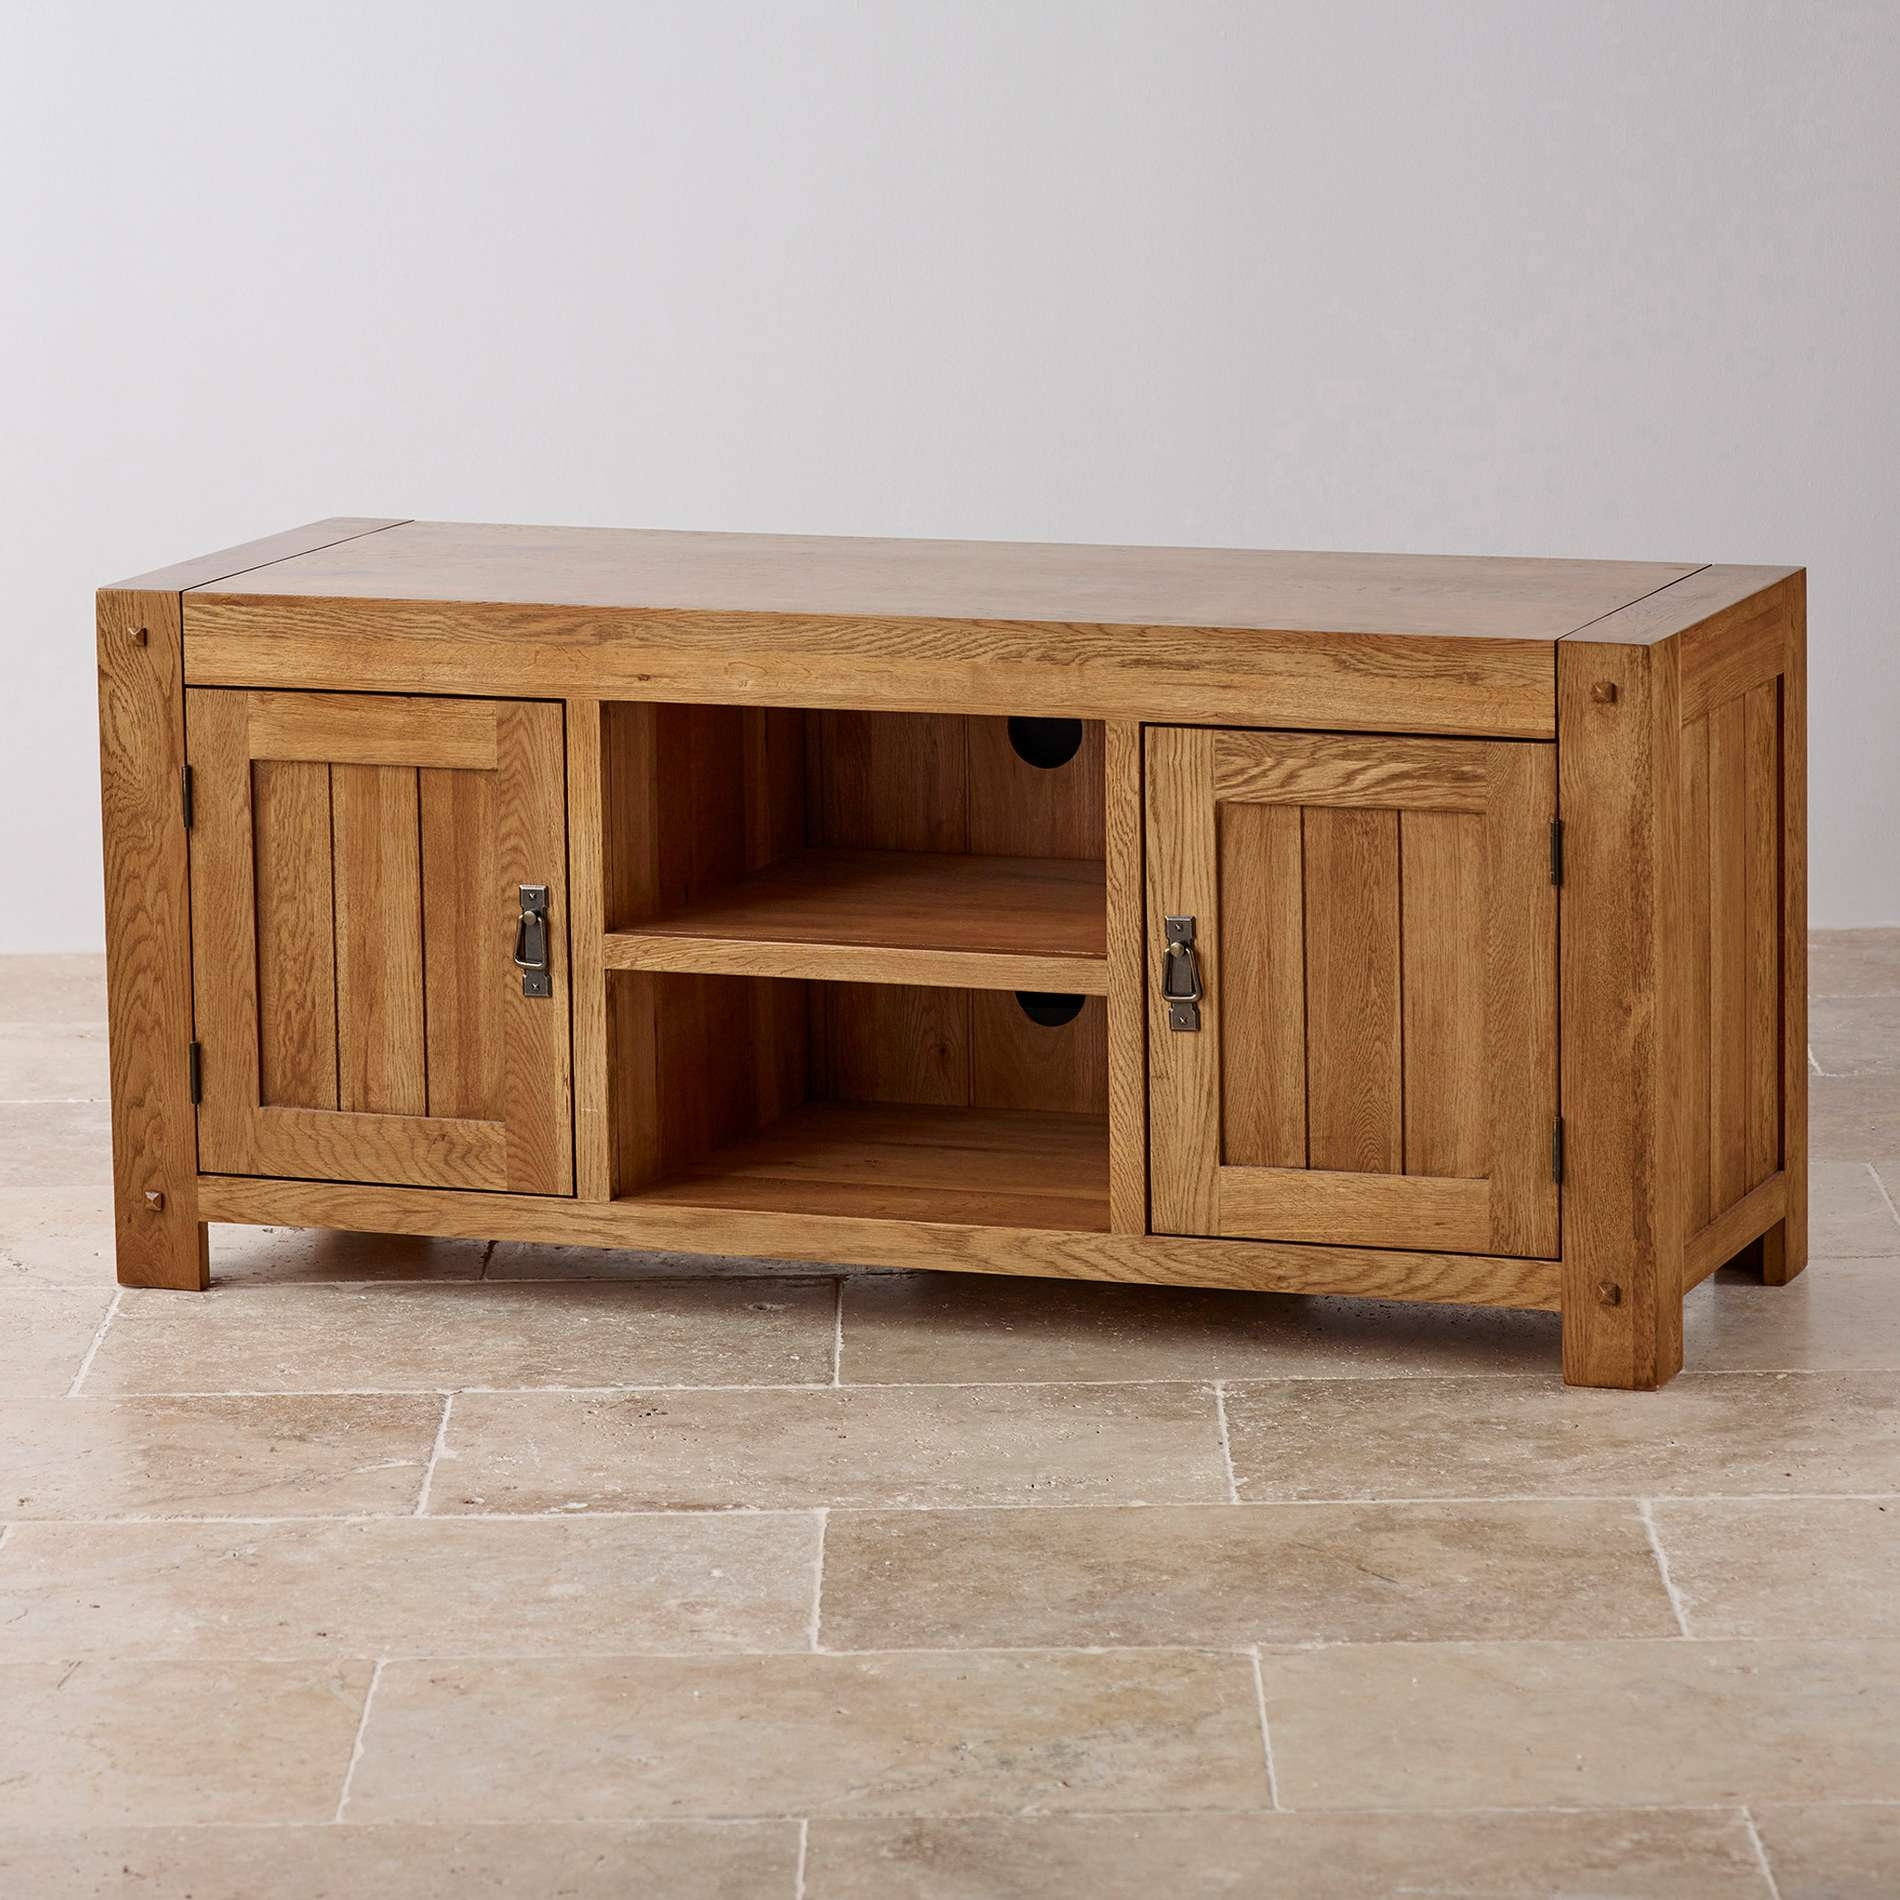 Tv Cabinets | Mango, Painted & Oak Tv Units | Oak Furniture Land With Regard To Oak Tv Cabinets With Doors (View 17 of 20)